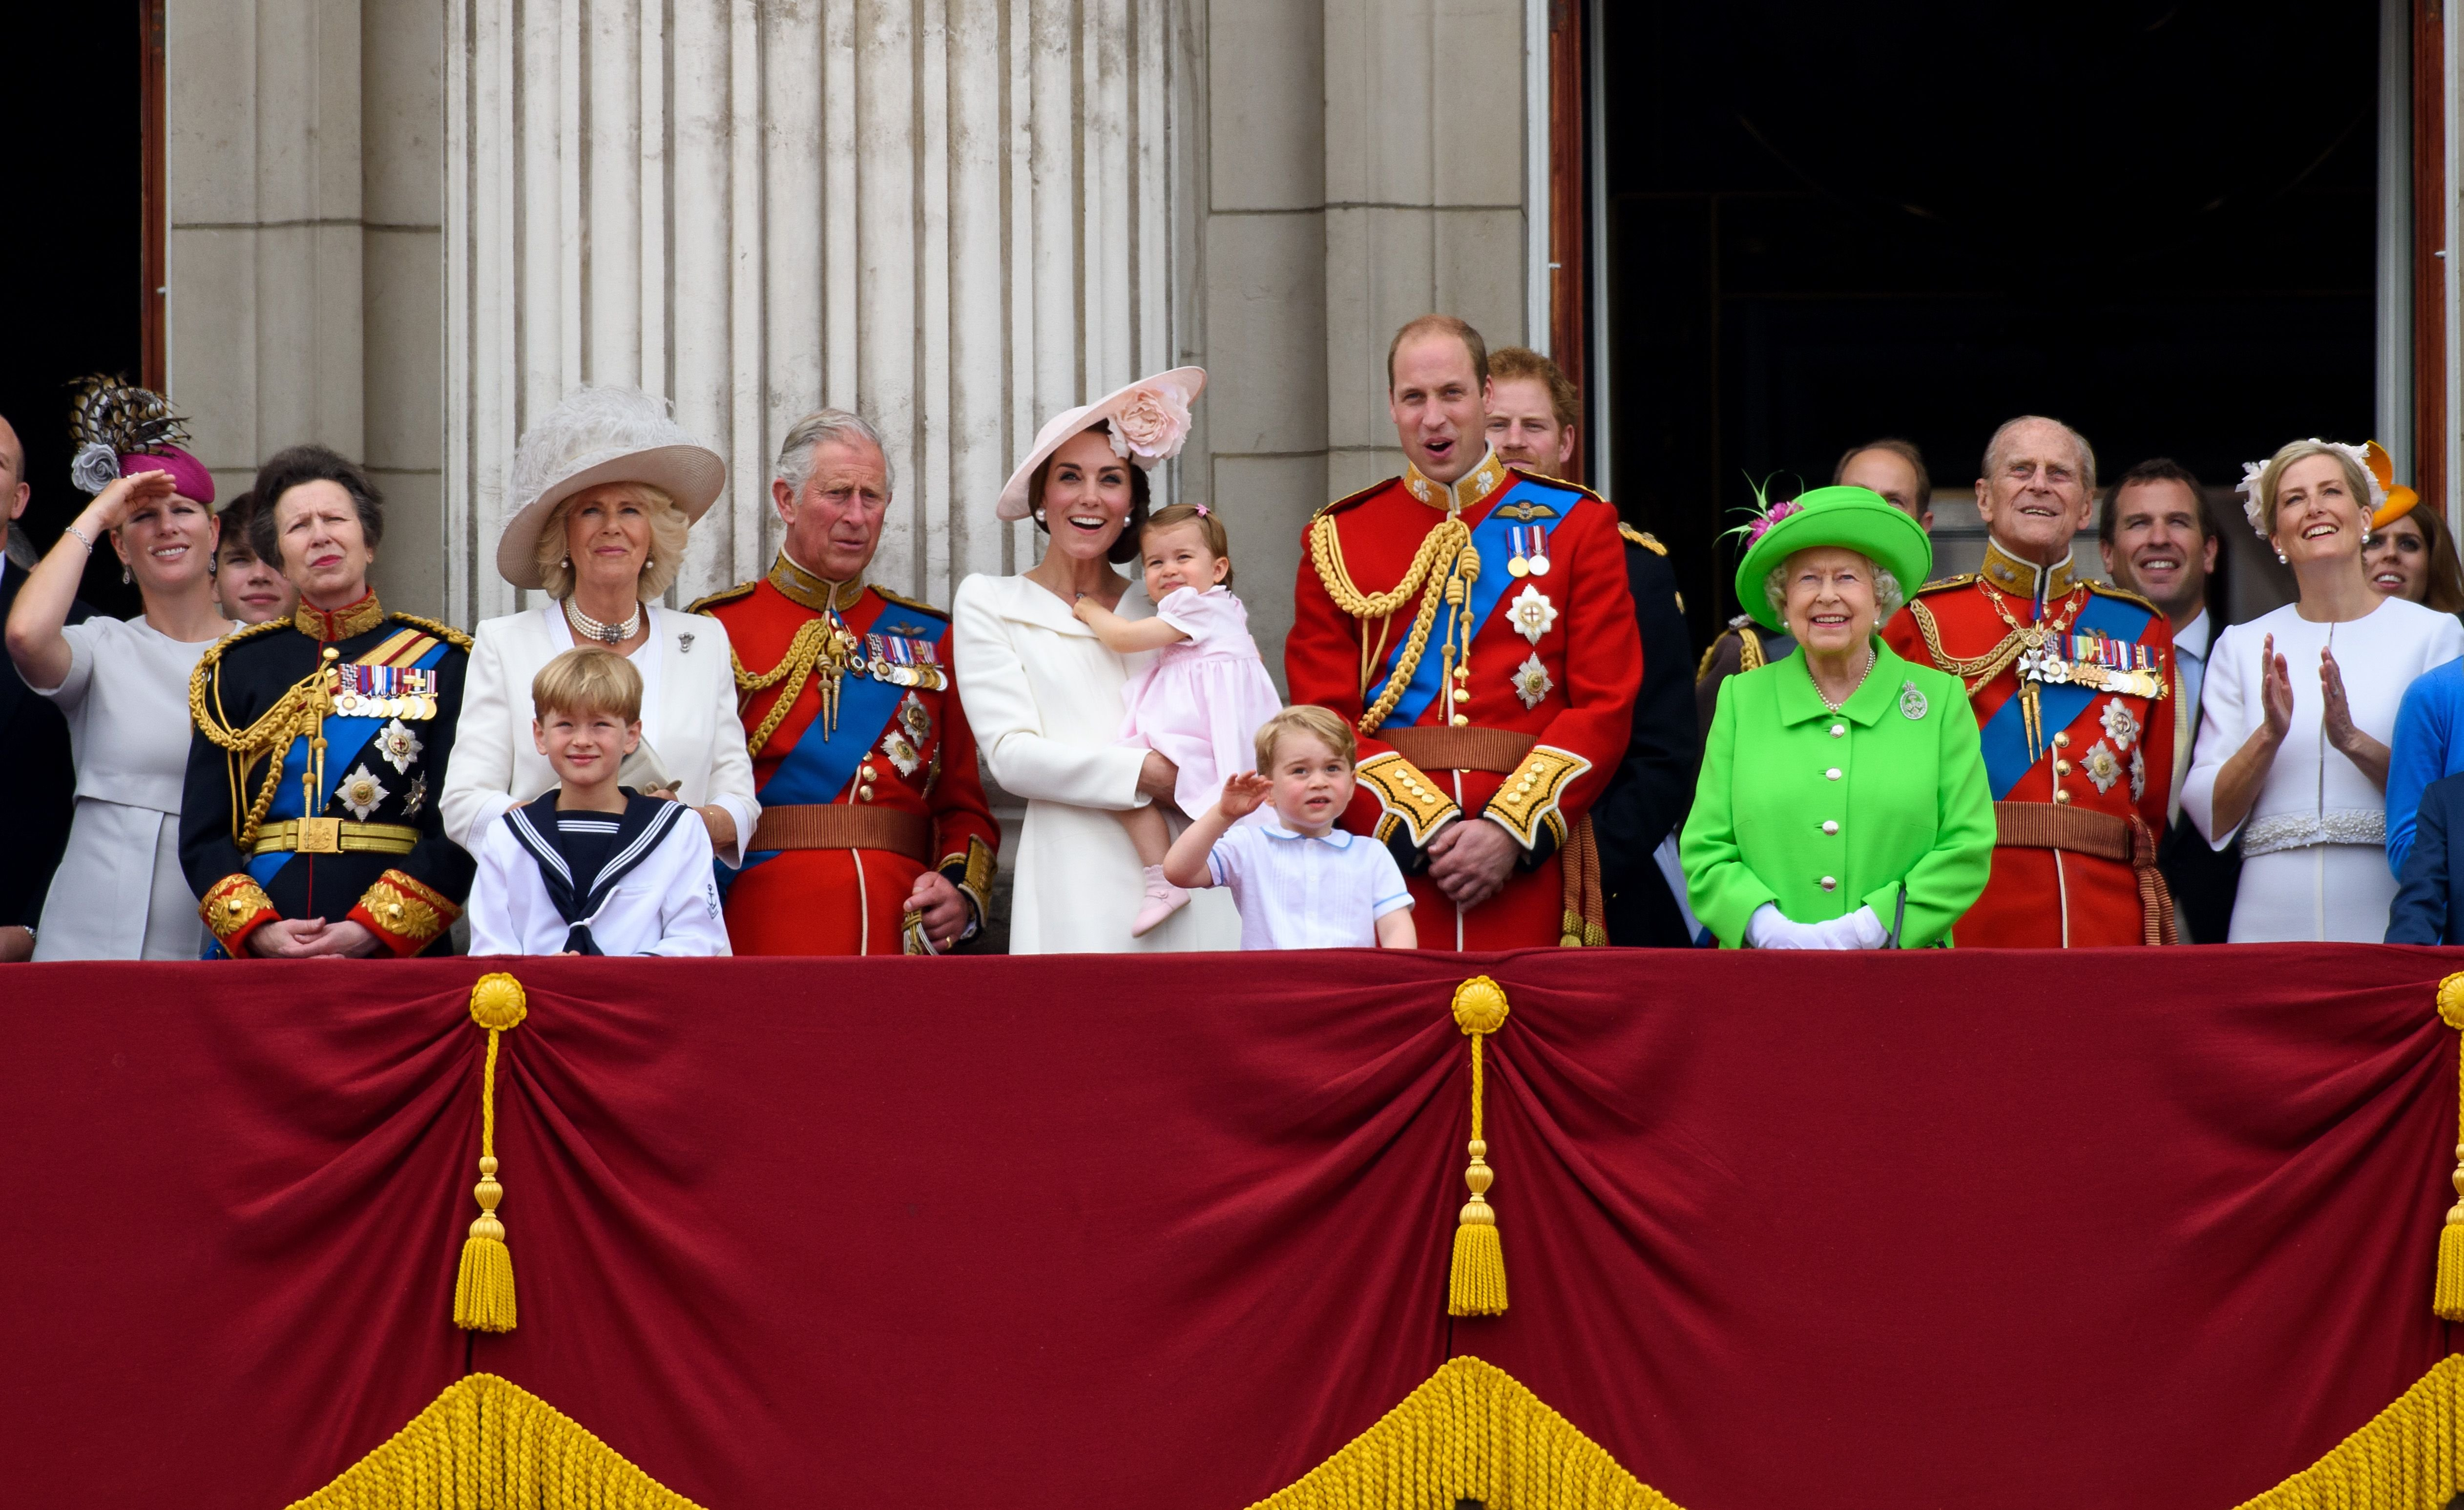 Some senior members of the royal family watch a plane fly past during the Trooping the Colour at The Mall on June 11, 2016 in London, England   Photo: Getty Images